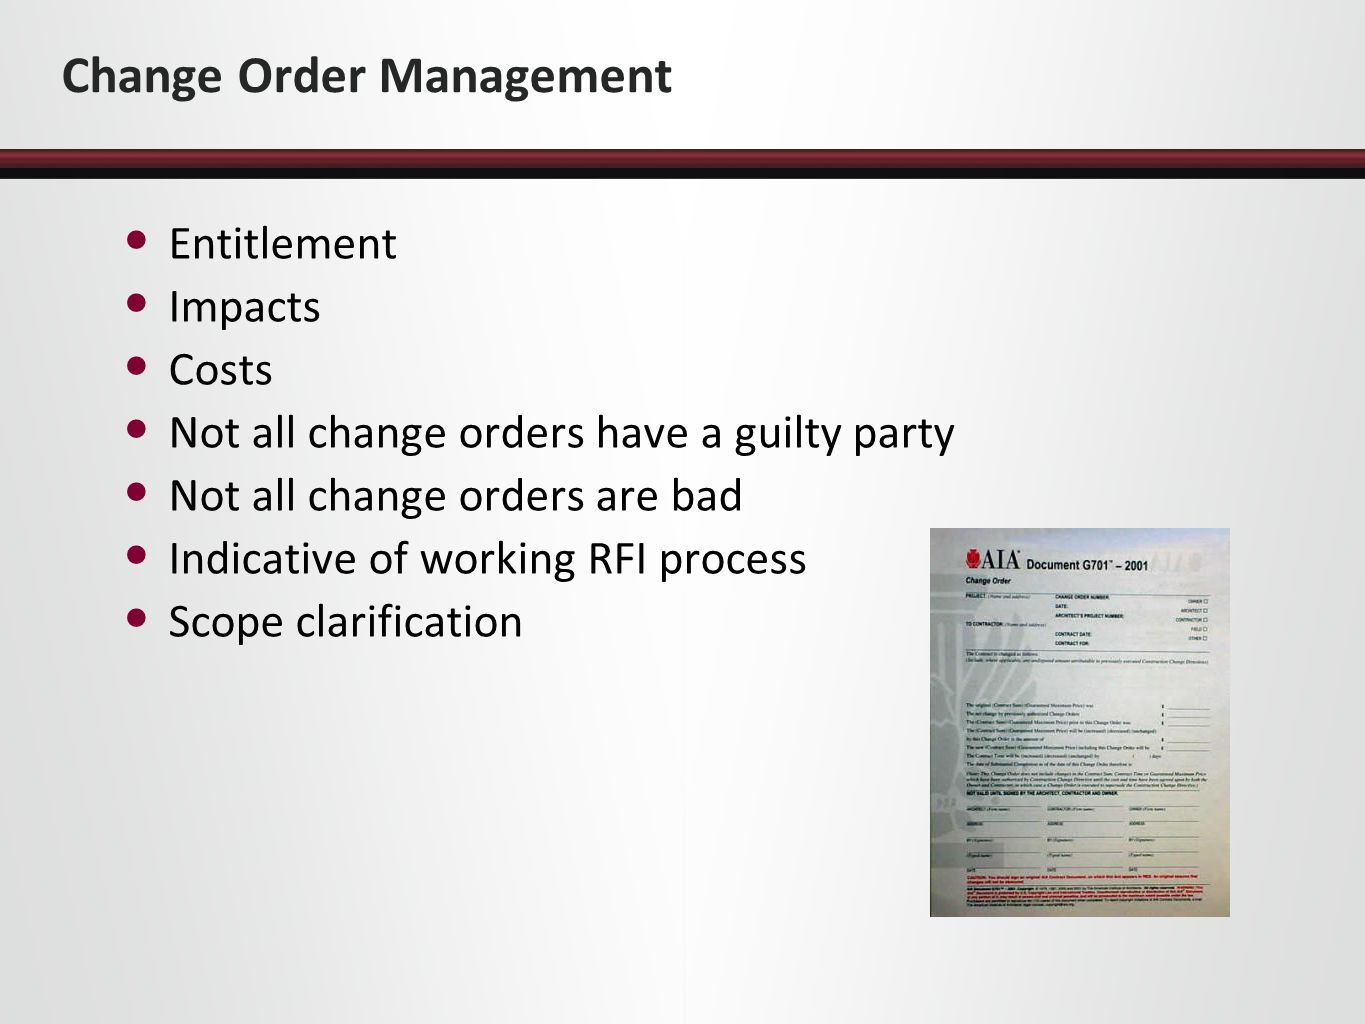 Change Order Management Entitlement Impacts Costs Not all change orders have a guilty party Not all change orders are bad Indicative of working RFI process Scope clarification